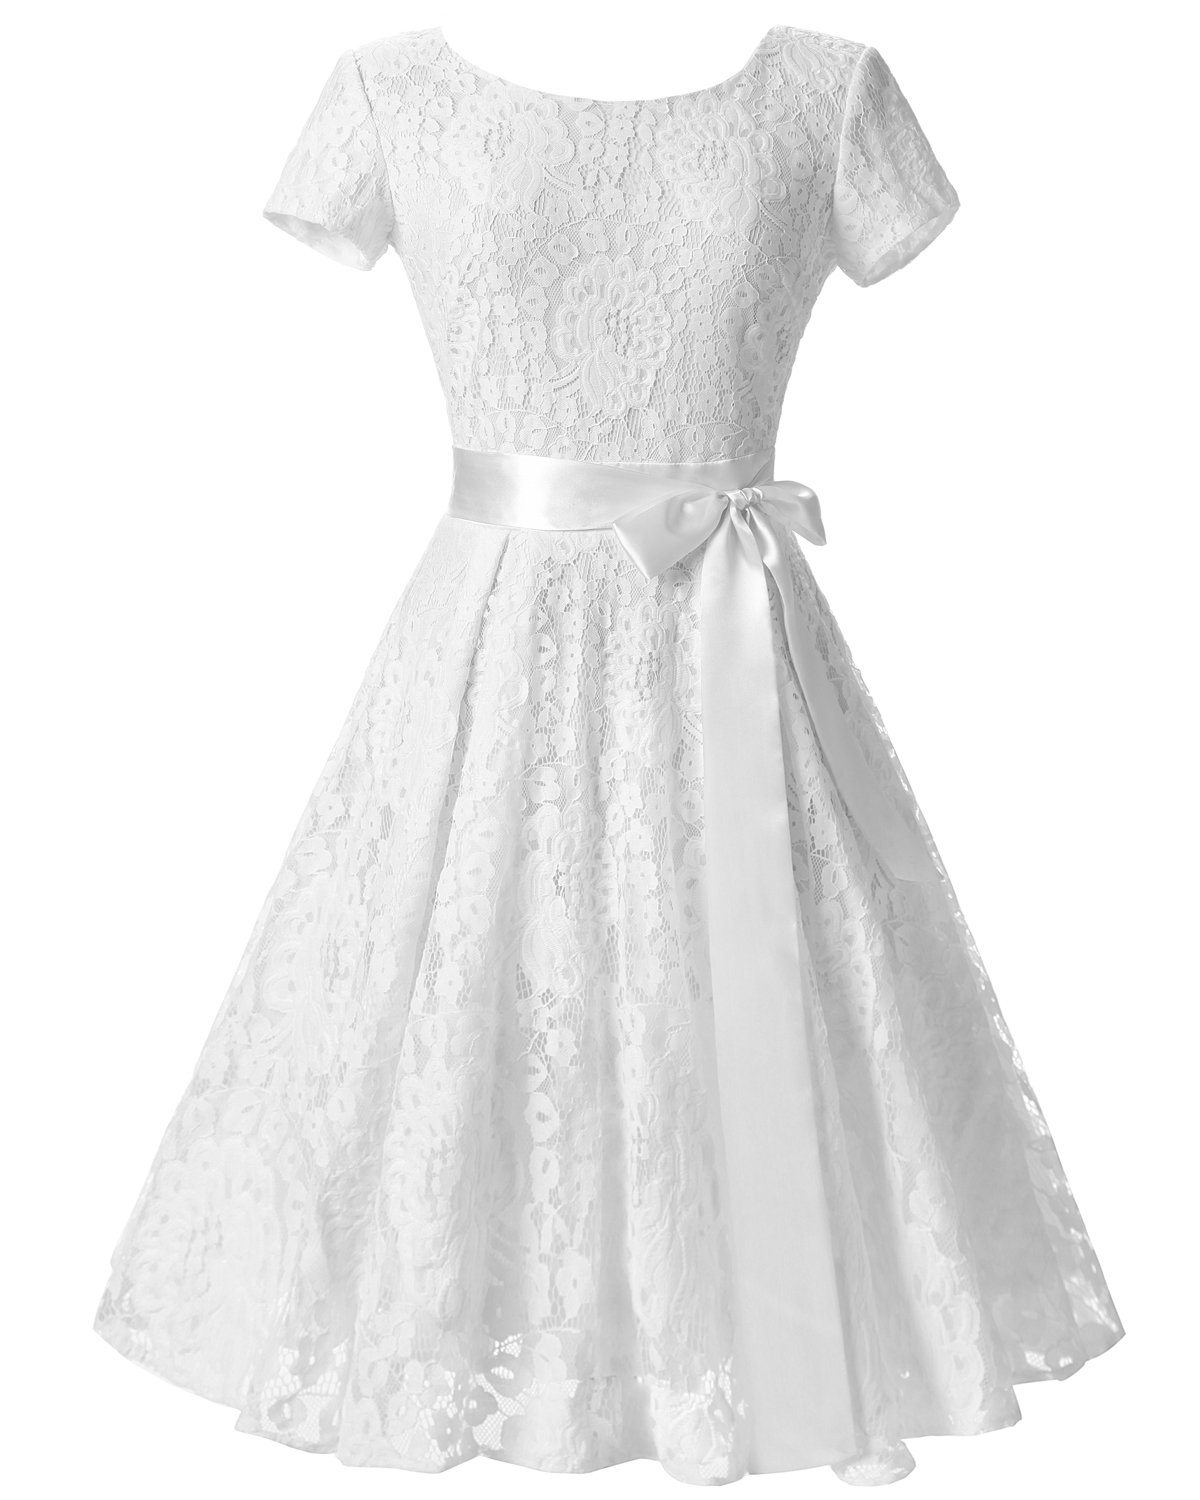 2020 Women White Lace Streetwear Short Sleeve Retro Prom Dress With A bow tie